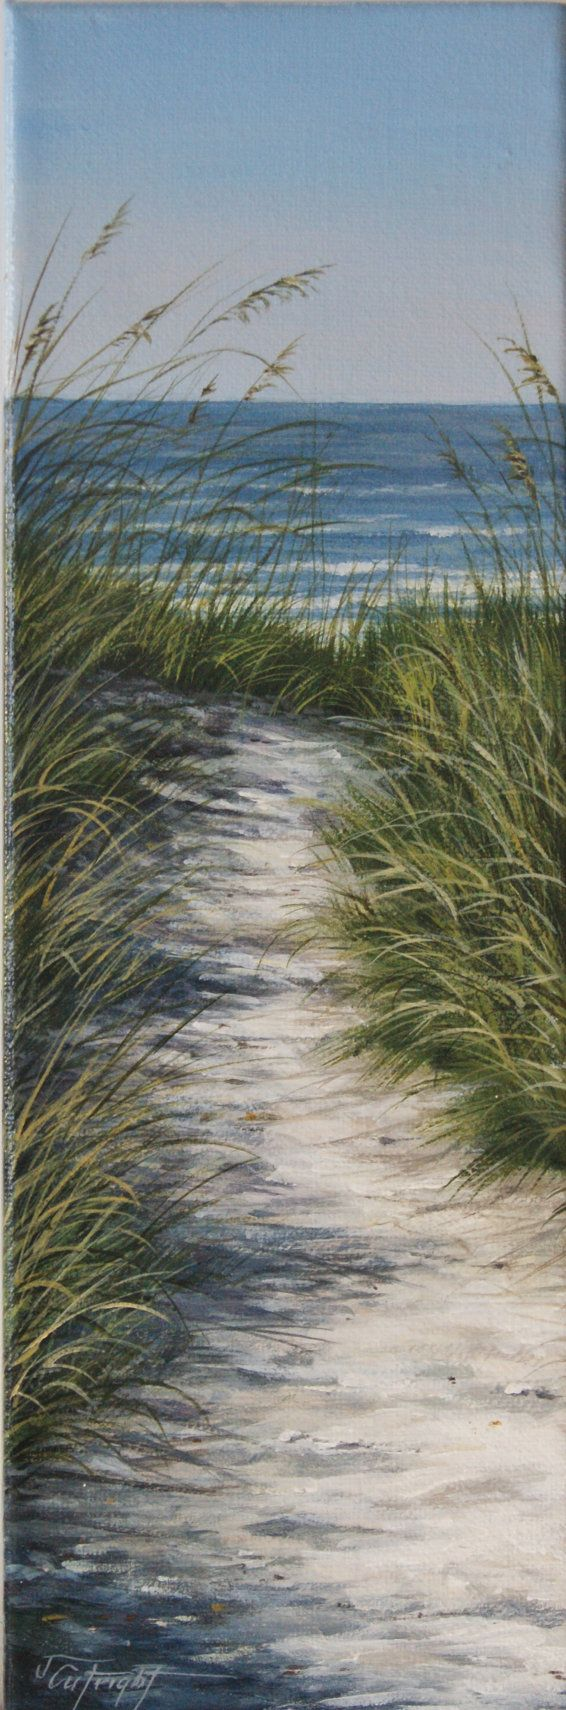 "Original acrylic painting on a 4"" x 12"" wide canvas. Titled, Path to the Beach.  Inspired by memories of walks to the beach and the tranquility that follows from the sound of the ocean waves. A perfect accent piece for those smaller, narrow wall spaces. As a professional artist, I take great pride in creating each and every one of my works of art. All of my pieces are ready to hang and will be packaged and shipped with care.  I will be happy to discuss combined shipping if you are interested…"